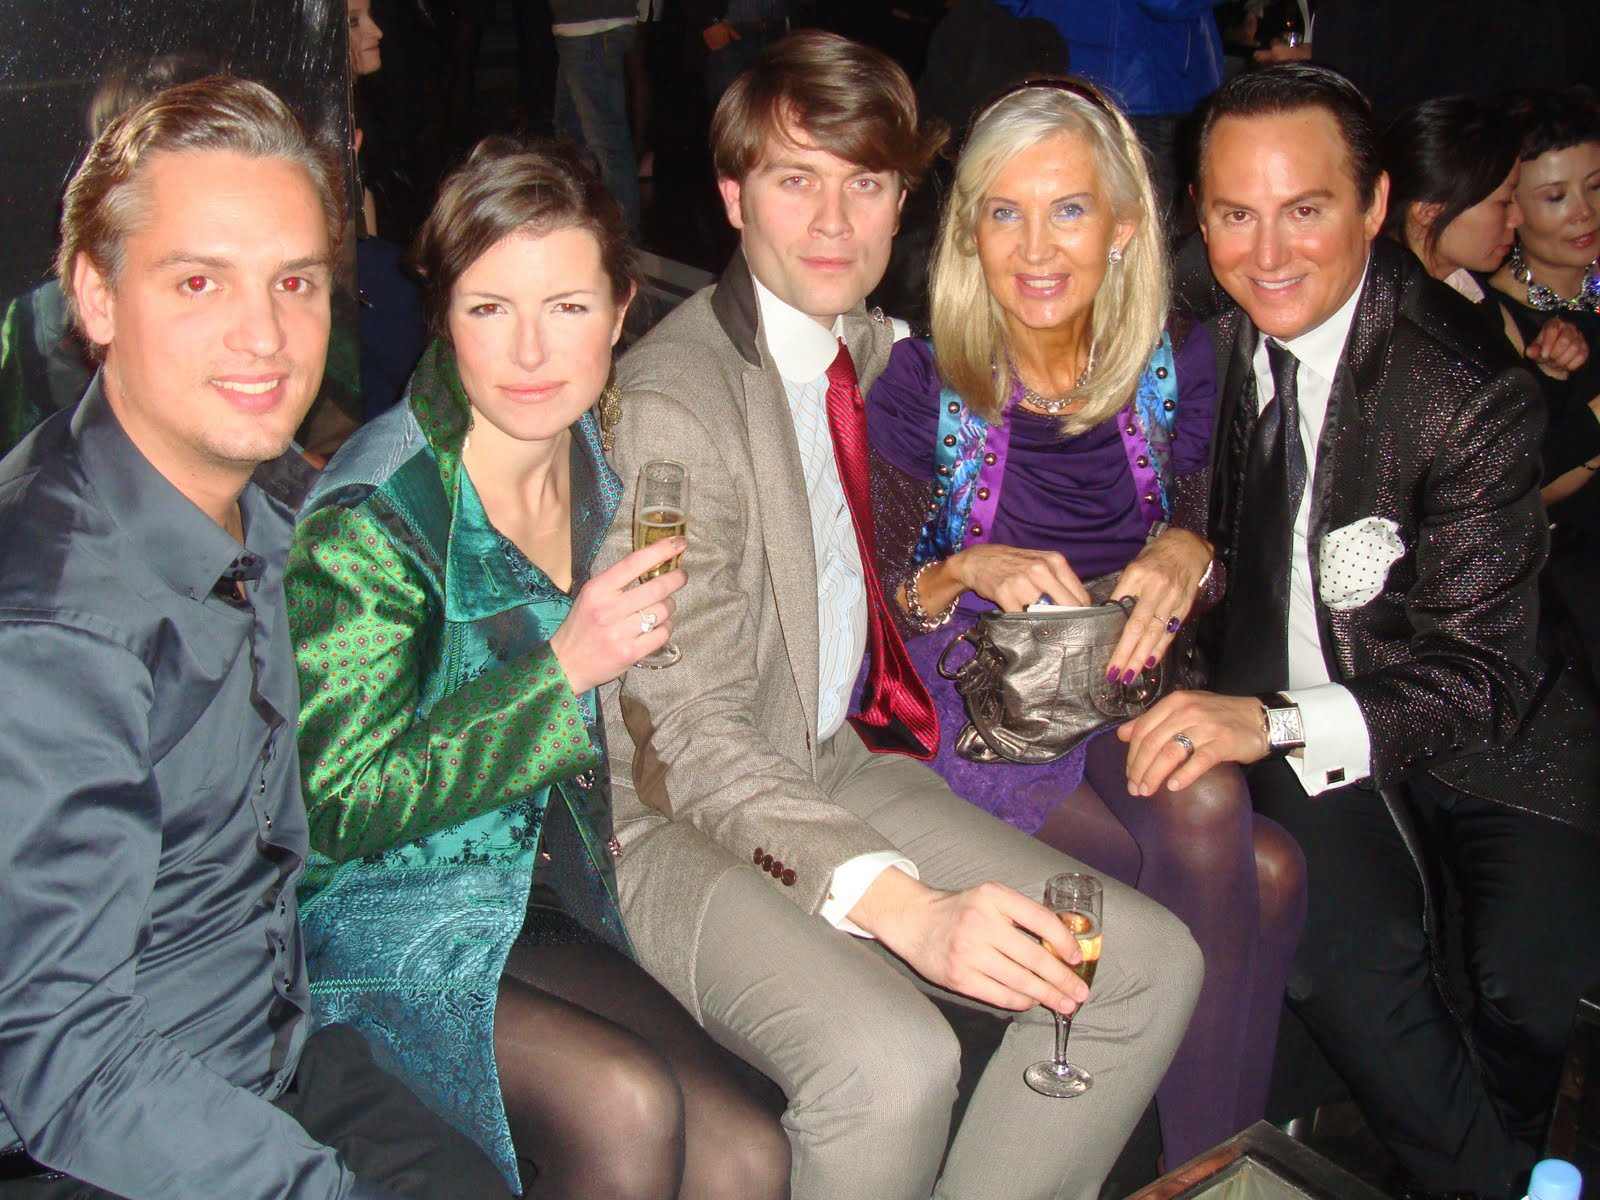 International luxury consulting barbara bui live party for Interieur chic parisien